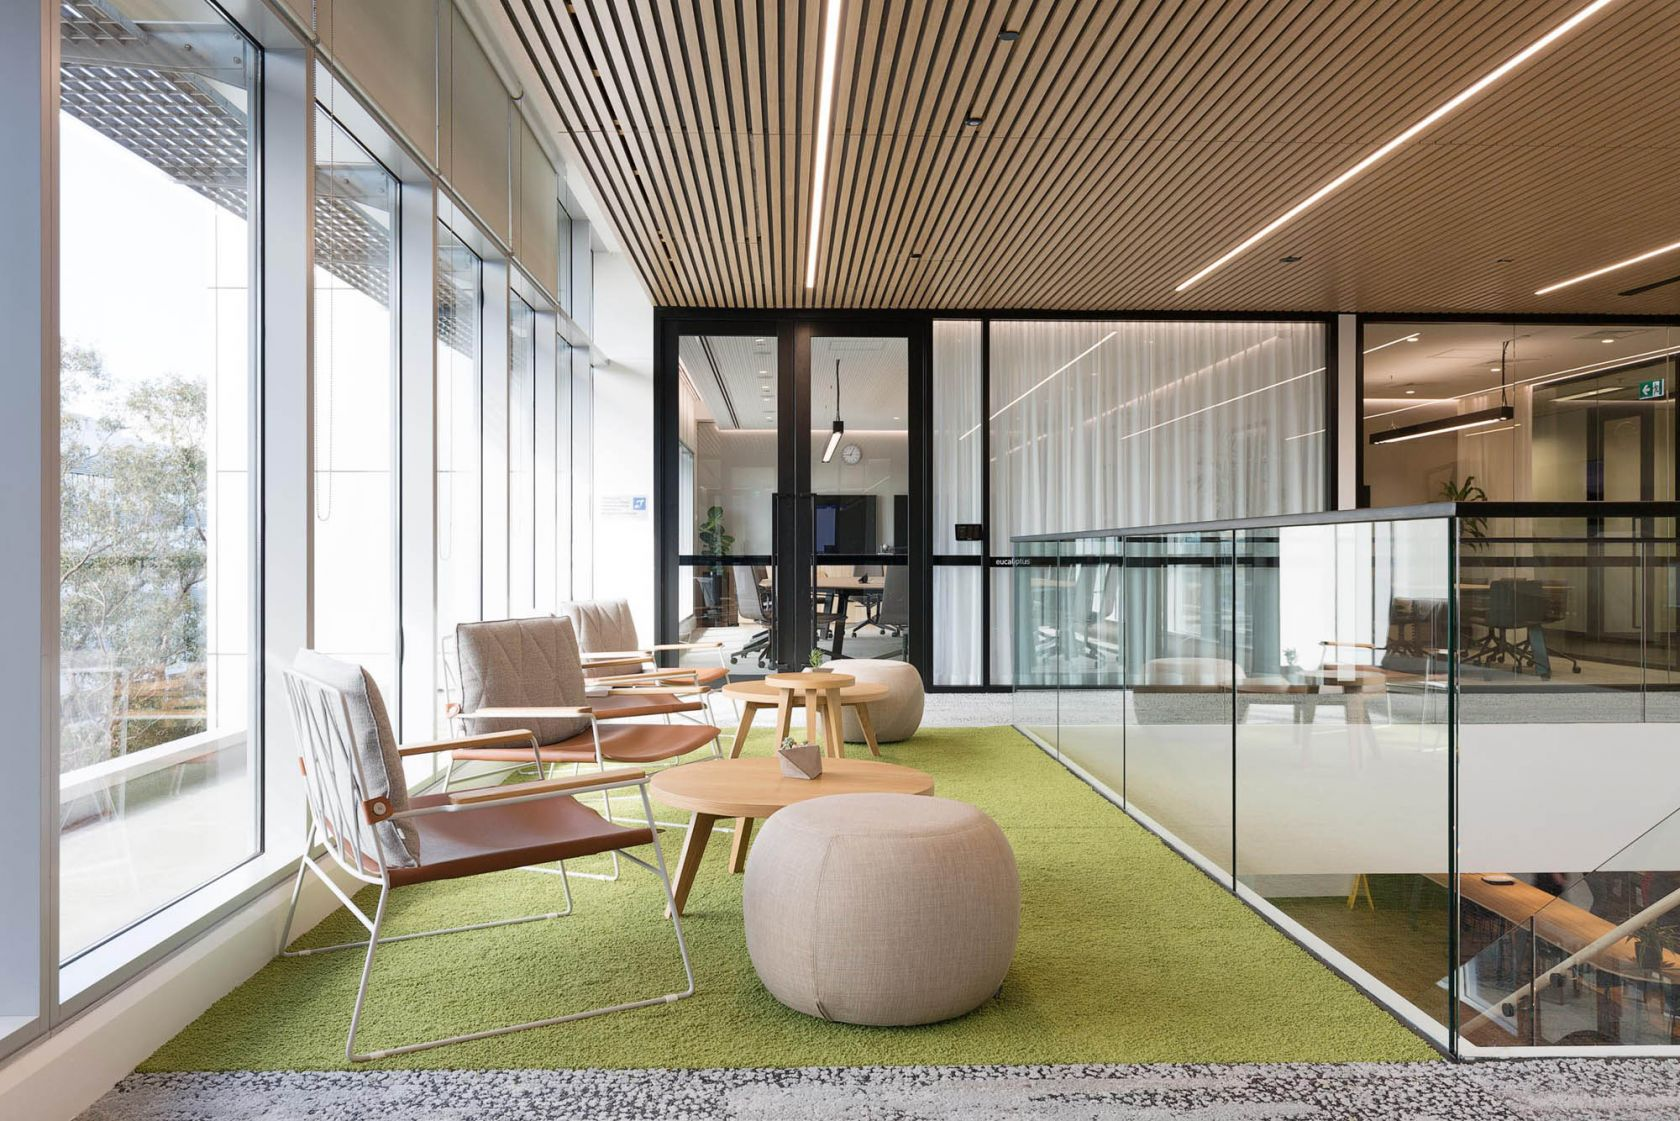 suez office with timber ceiling slats and chairs with foot stool